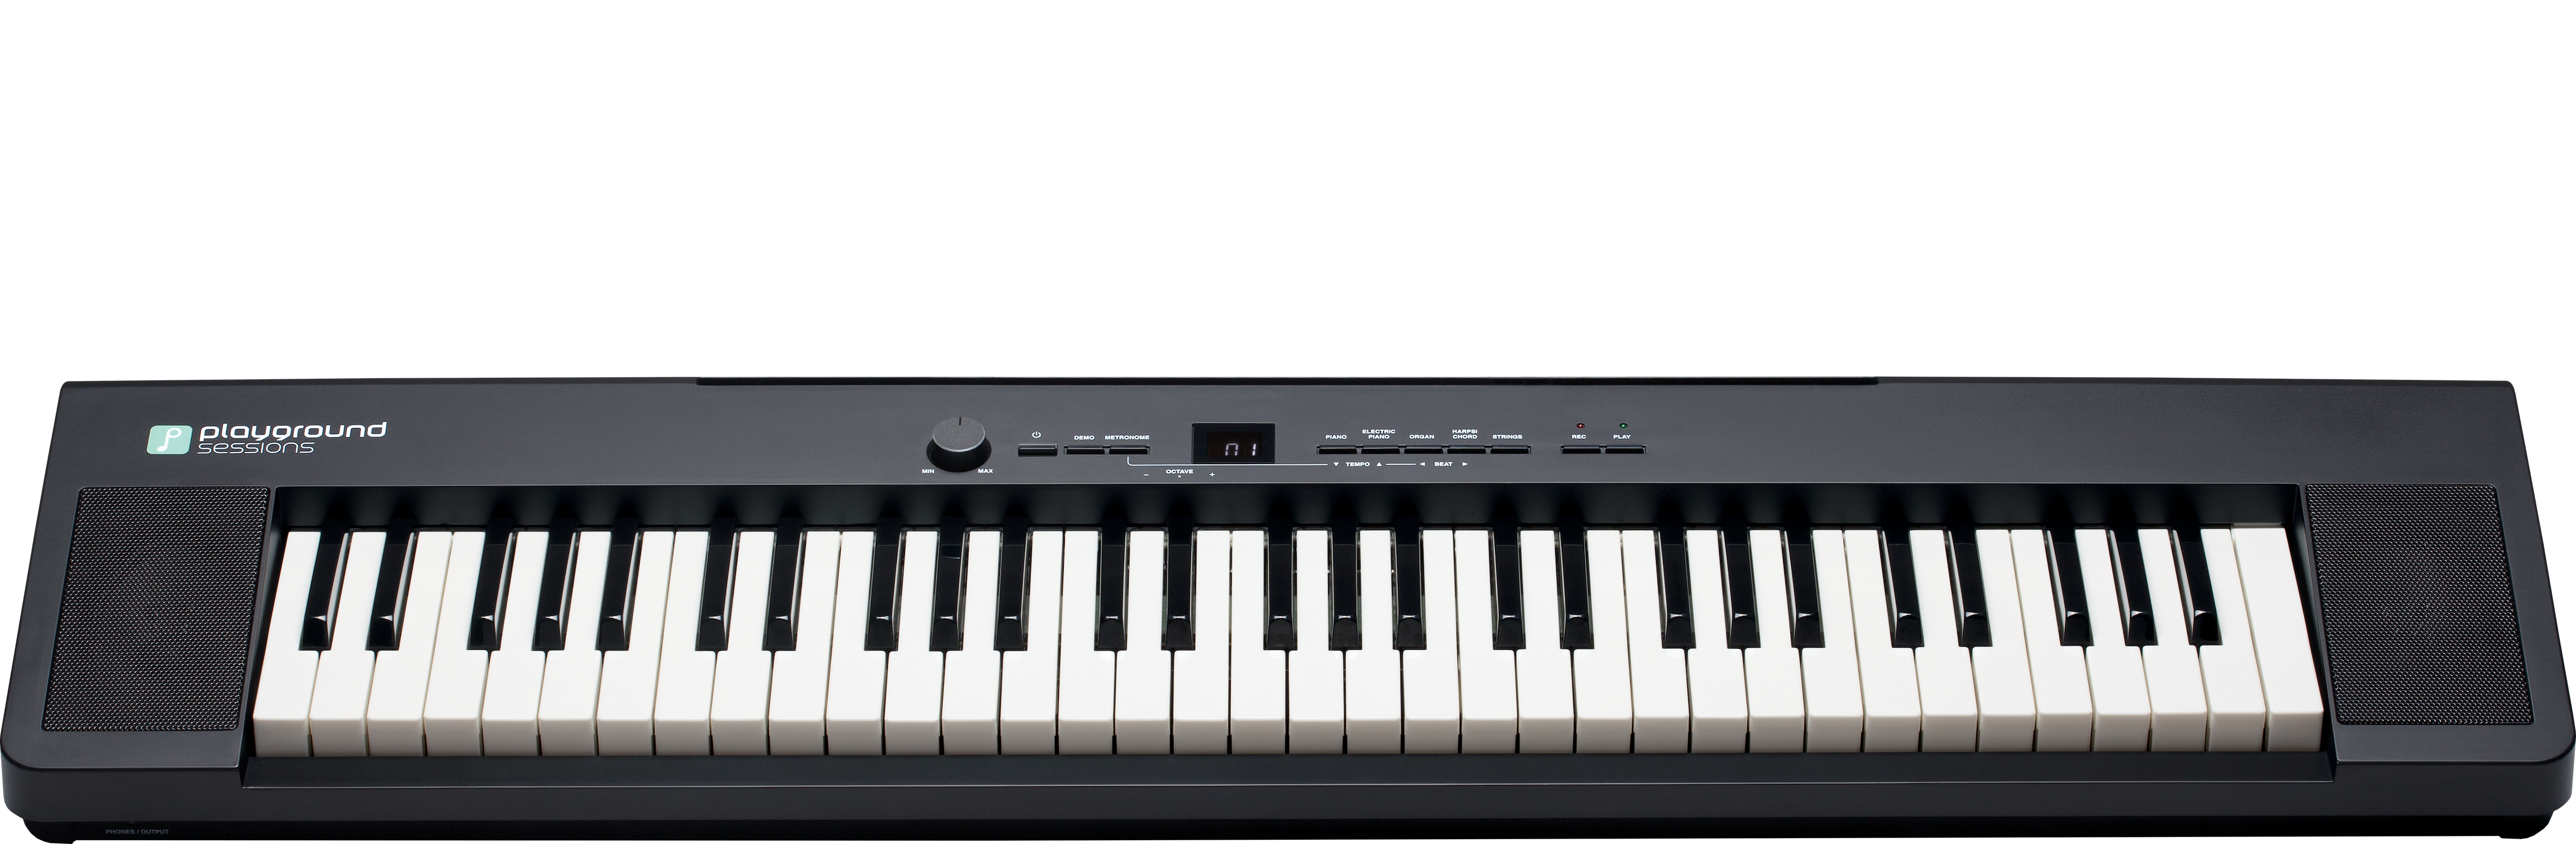 Playground Sessions PG-150 Keyboard with Subscription